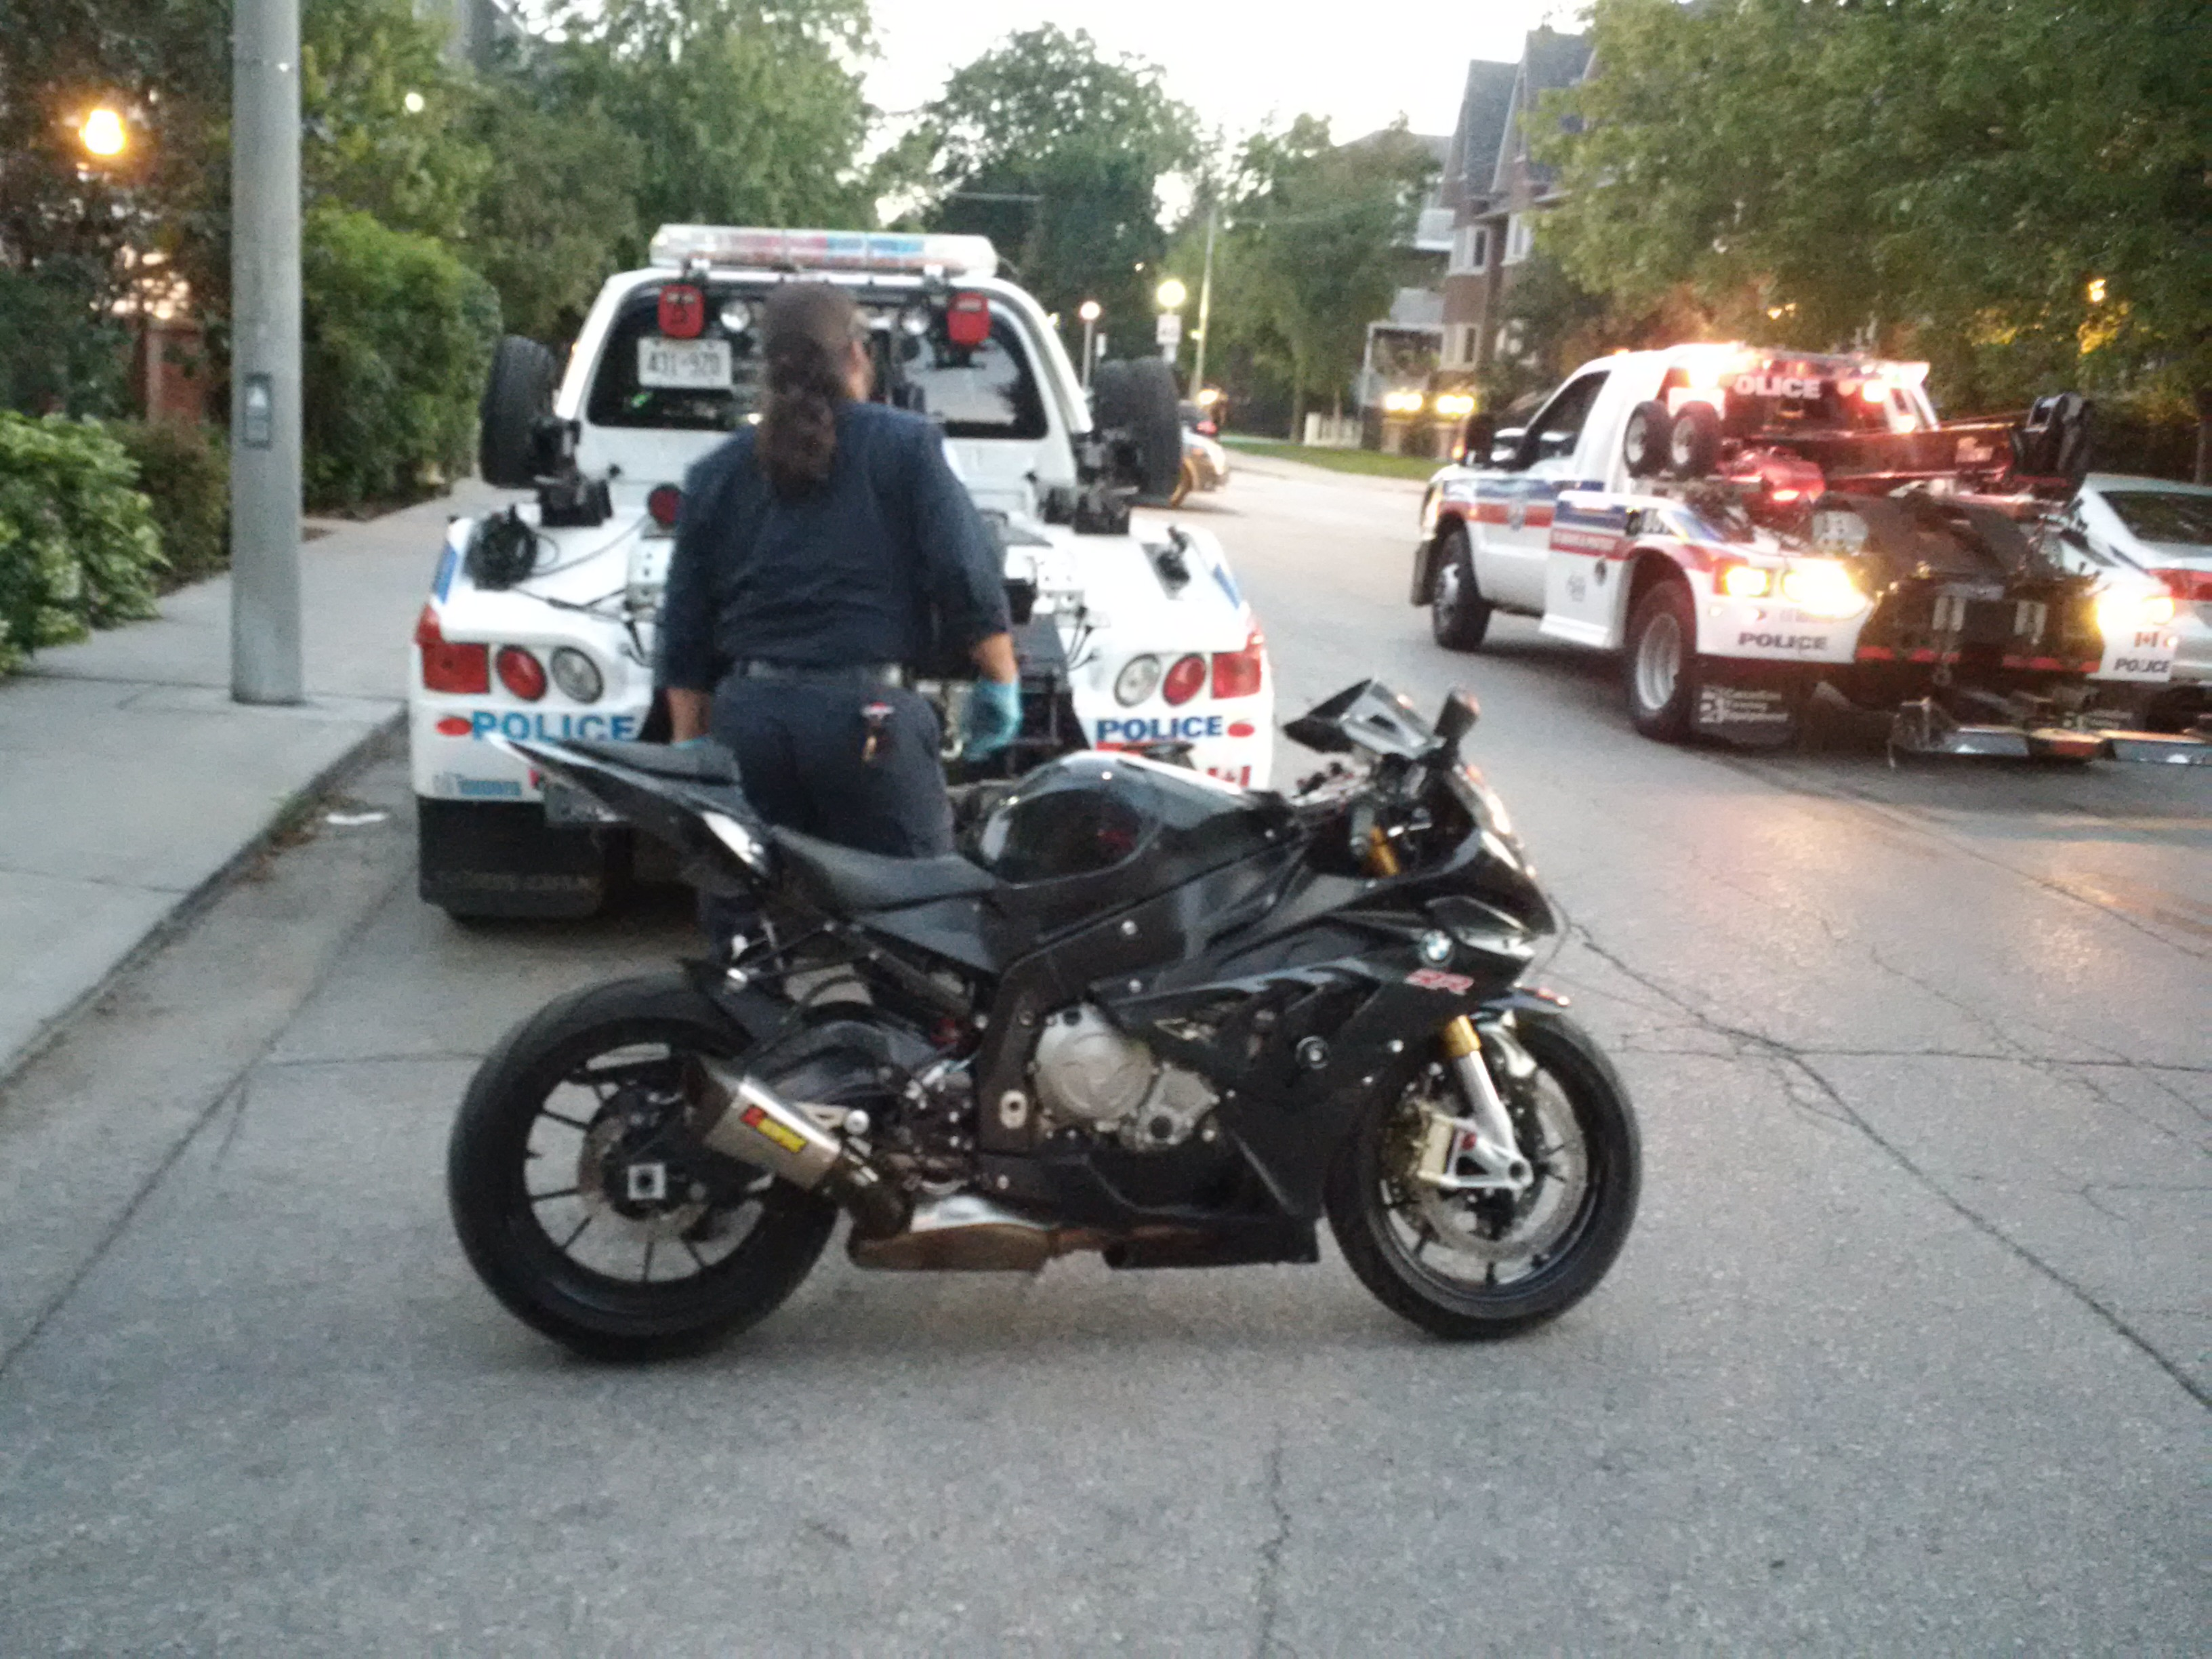 a motorcycle shooting  Biker gang ties suspected in fatal King West shooting: source ...